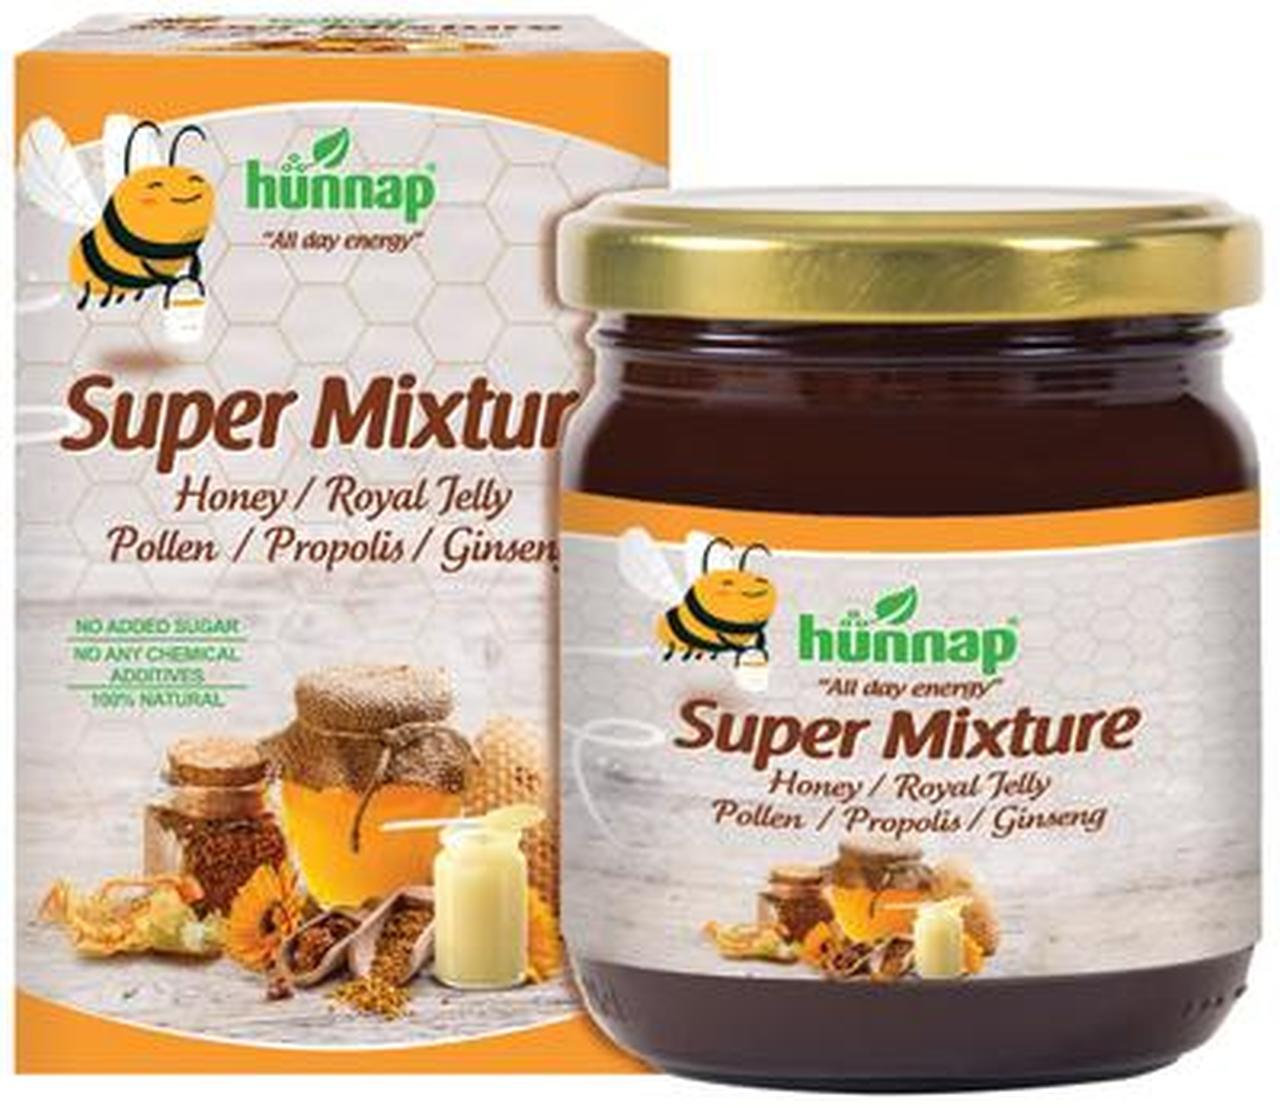 Hunnap Super Mixture Honey - Royal Jelly - Pollen - Propolis - Ginseng - No Added Sugar